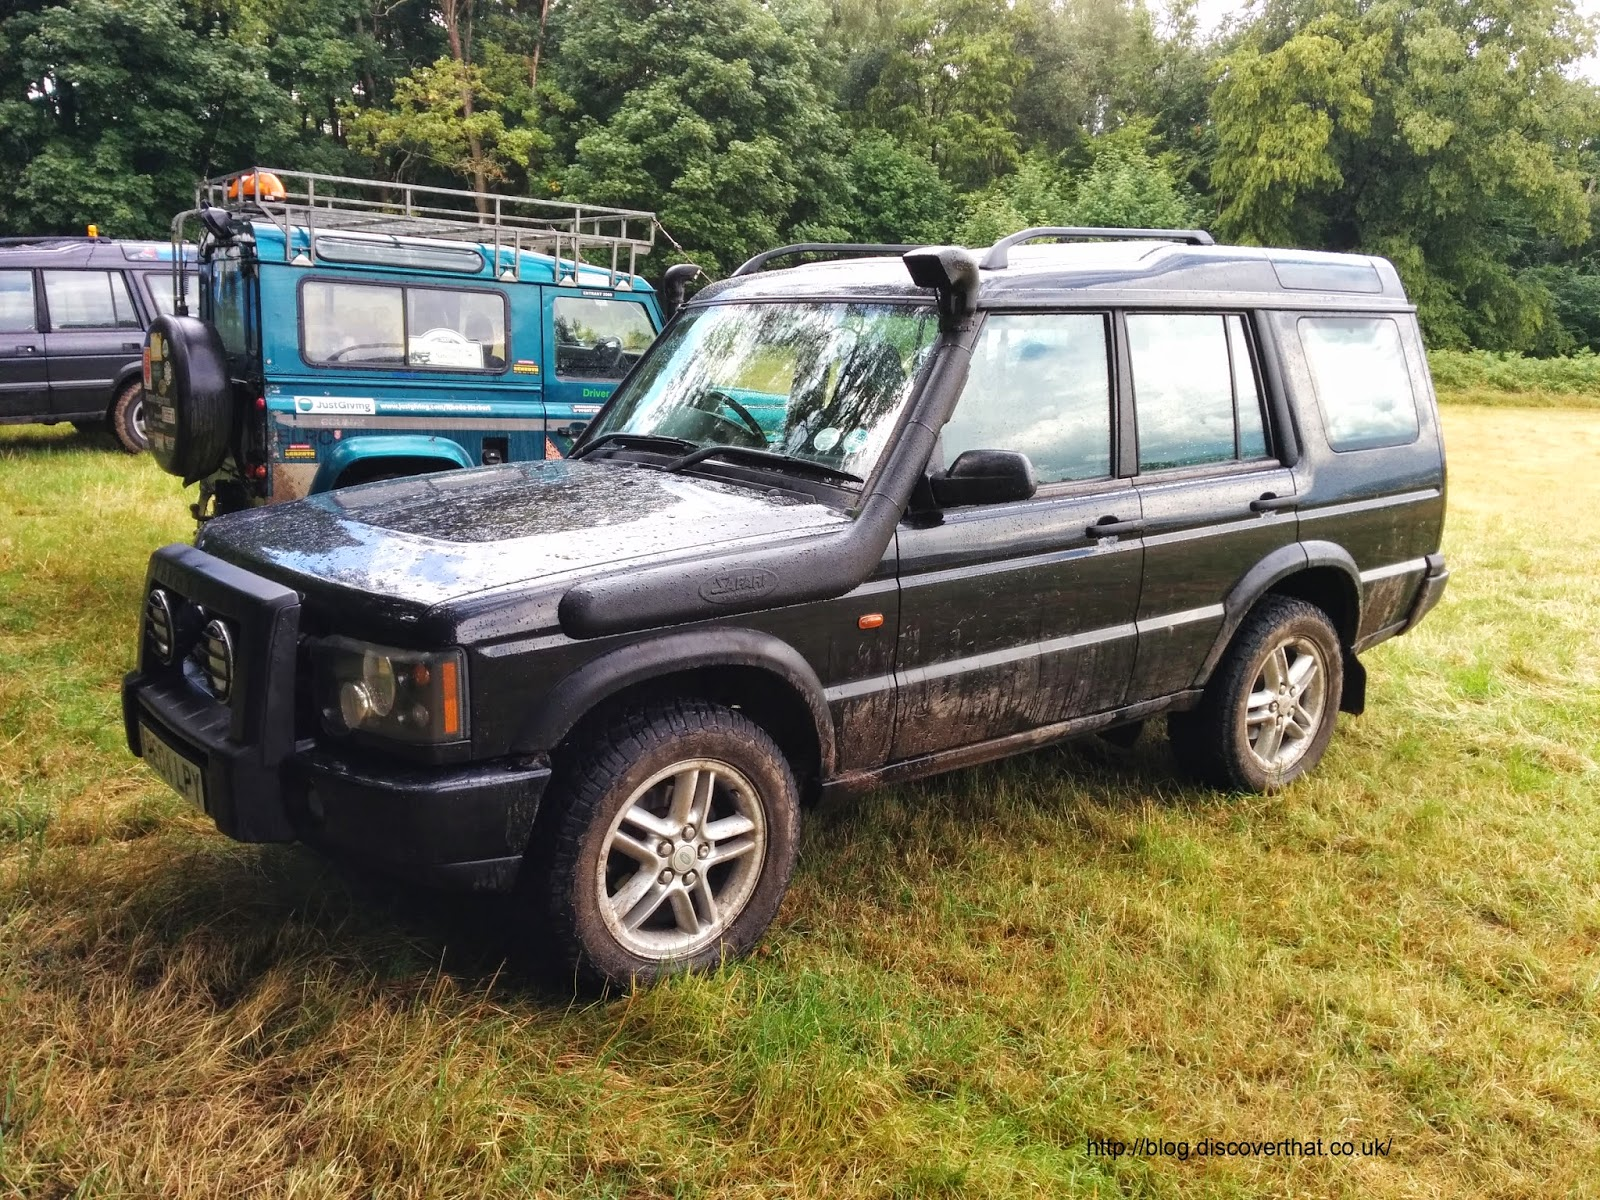 brave driven road parts rover off story land for landrover a new sport credit jaguar discovery autos bbc world